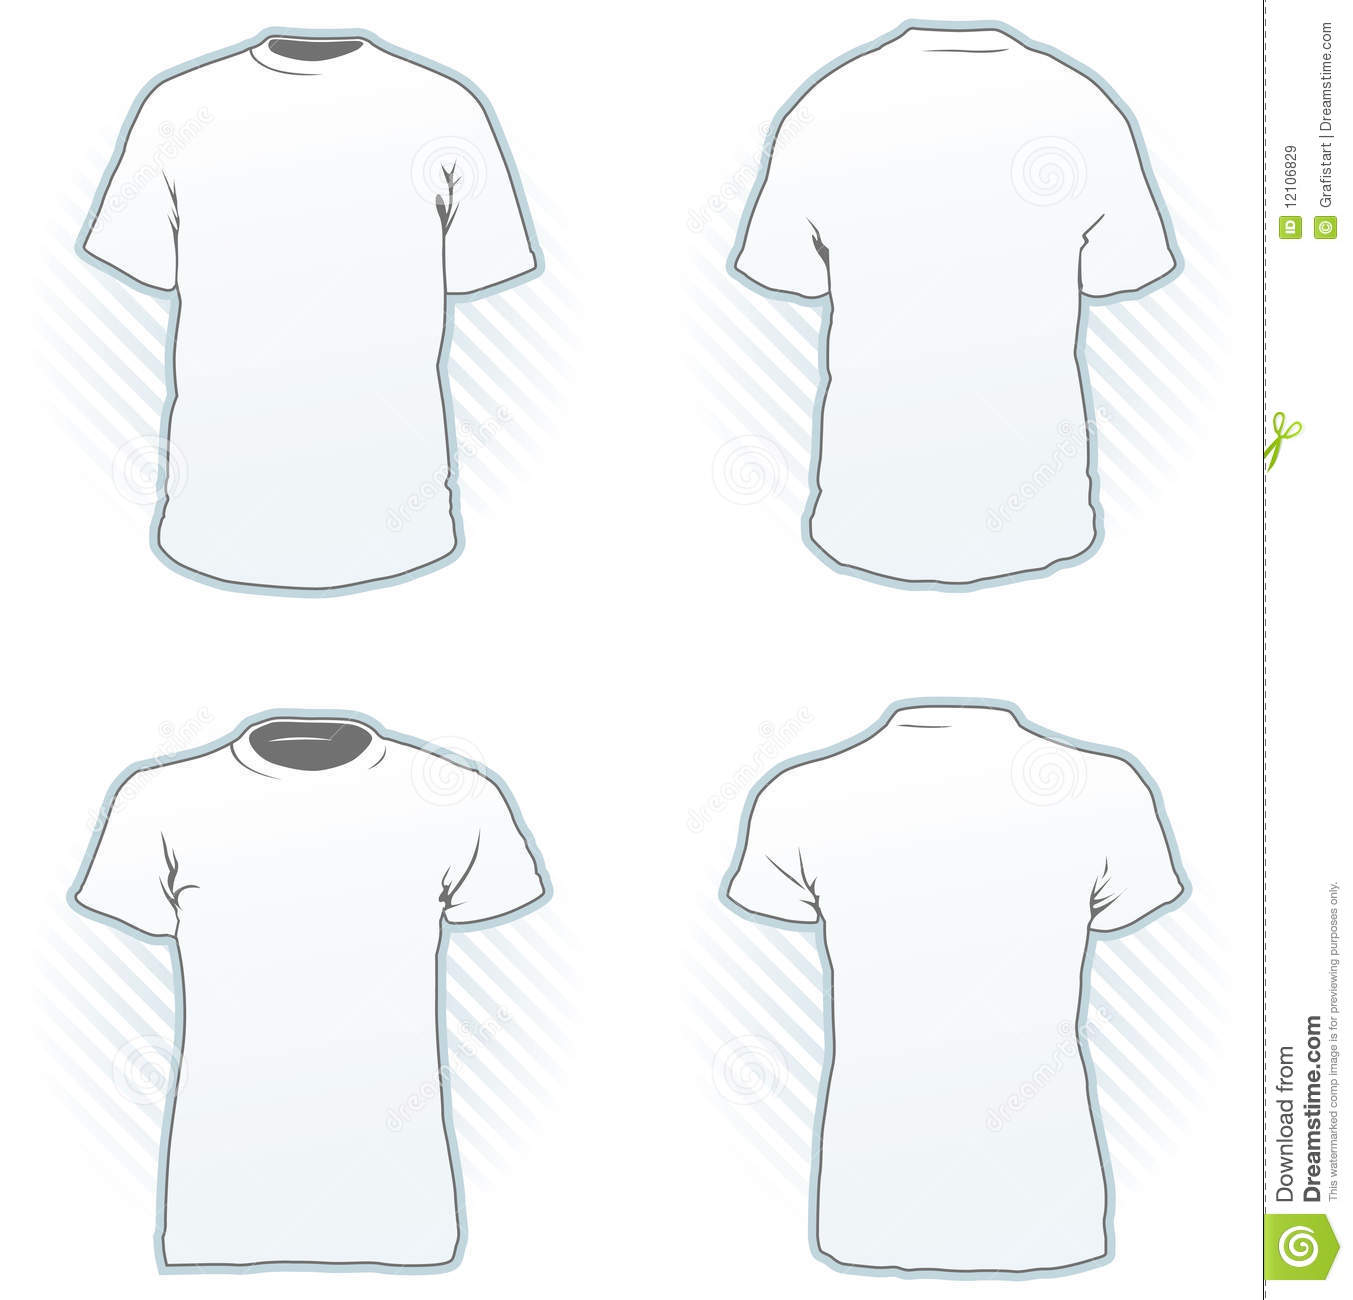 T shirt design template royalty free stock images image for T shirt design template online